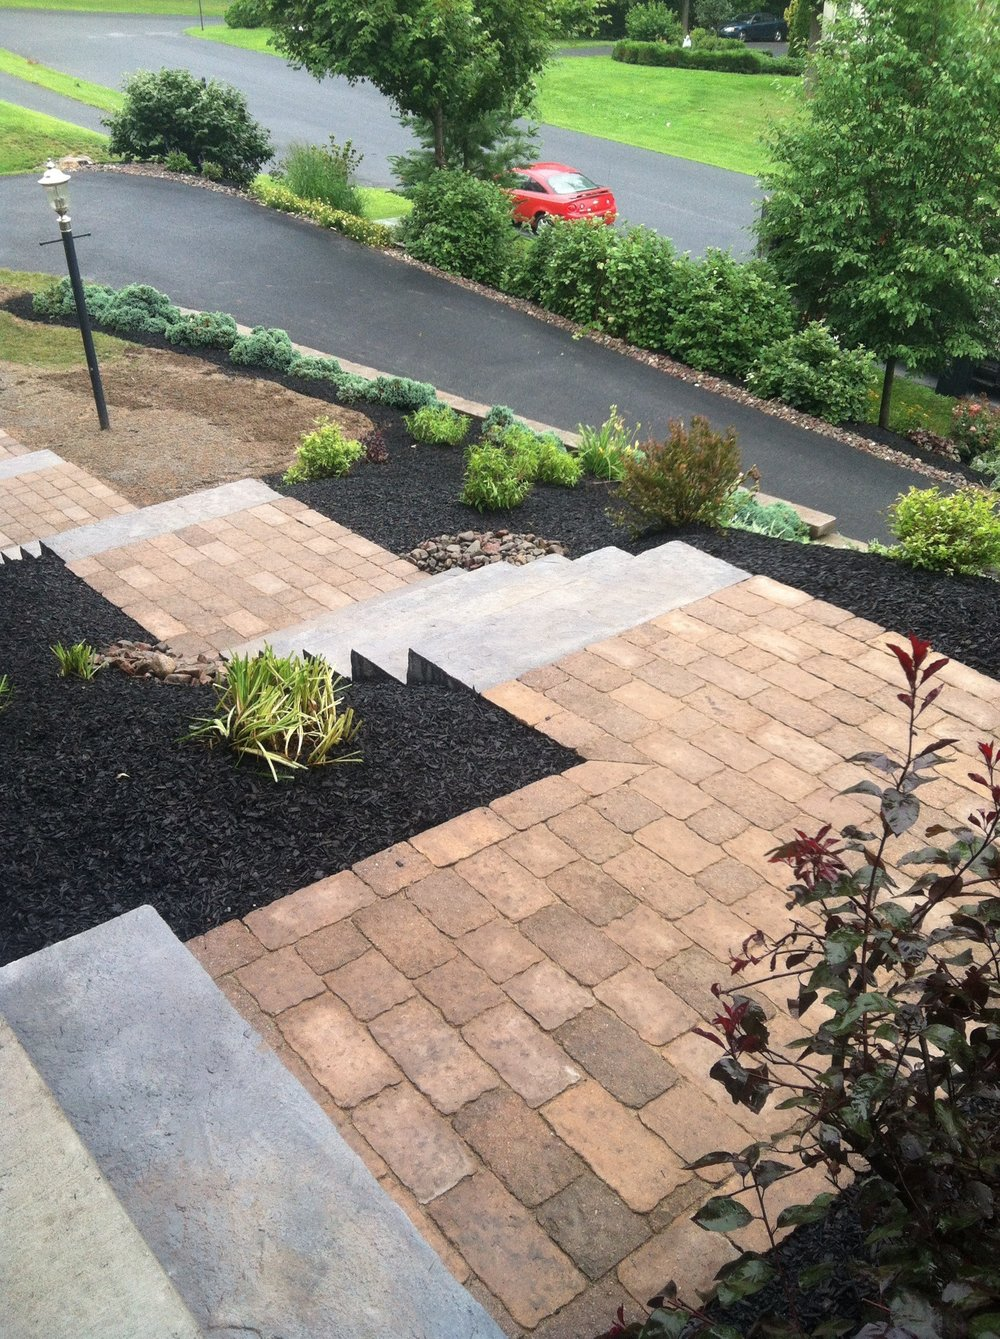 Professional landscape maintenance company in South Whitehall, PA